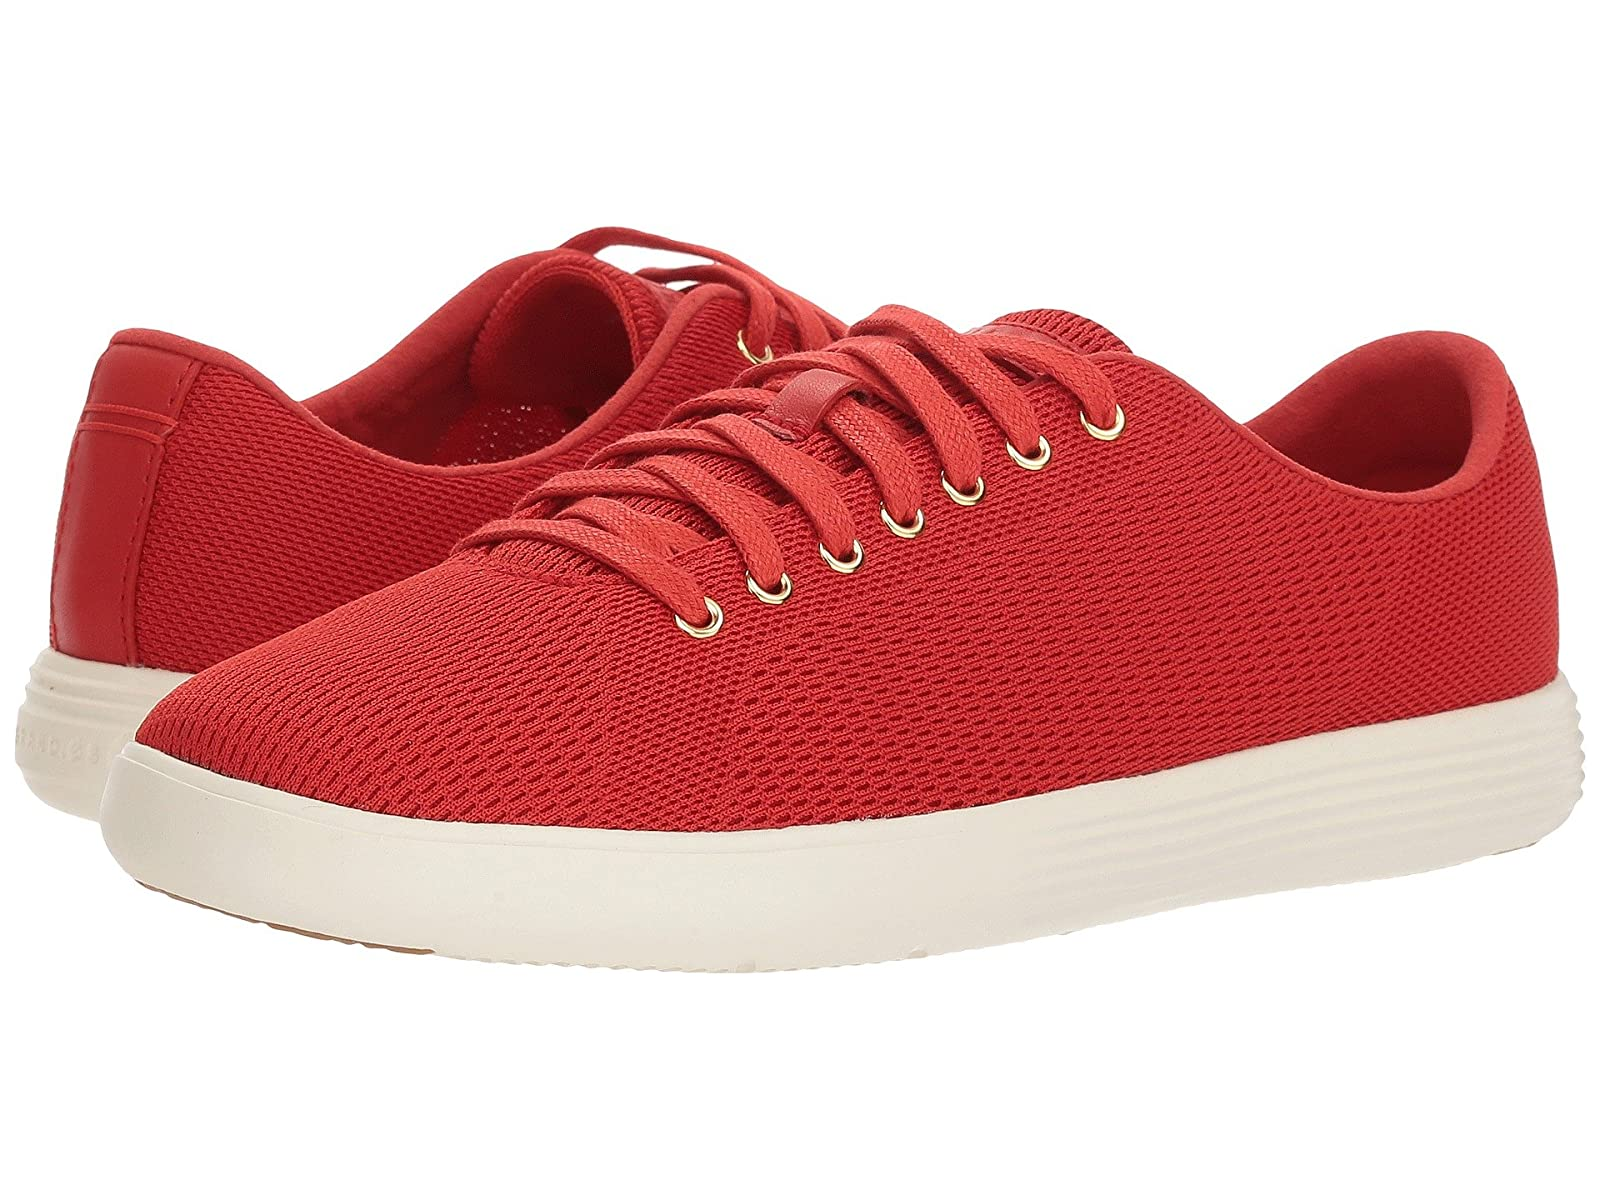 Cole Haan Grand Crosscourt Knit IICheap and distinctive eye-catching shoes